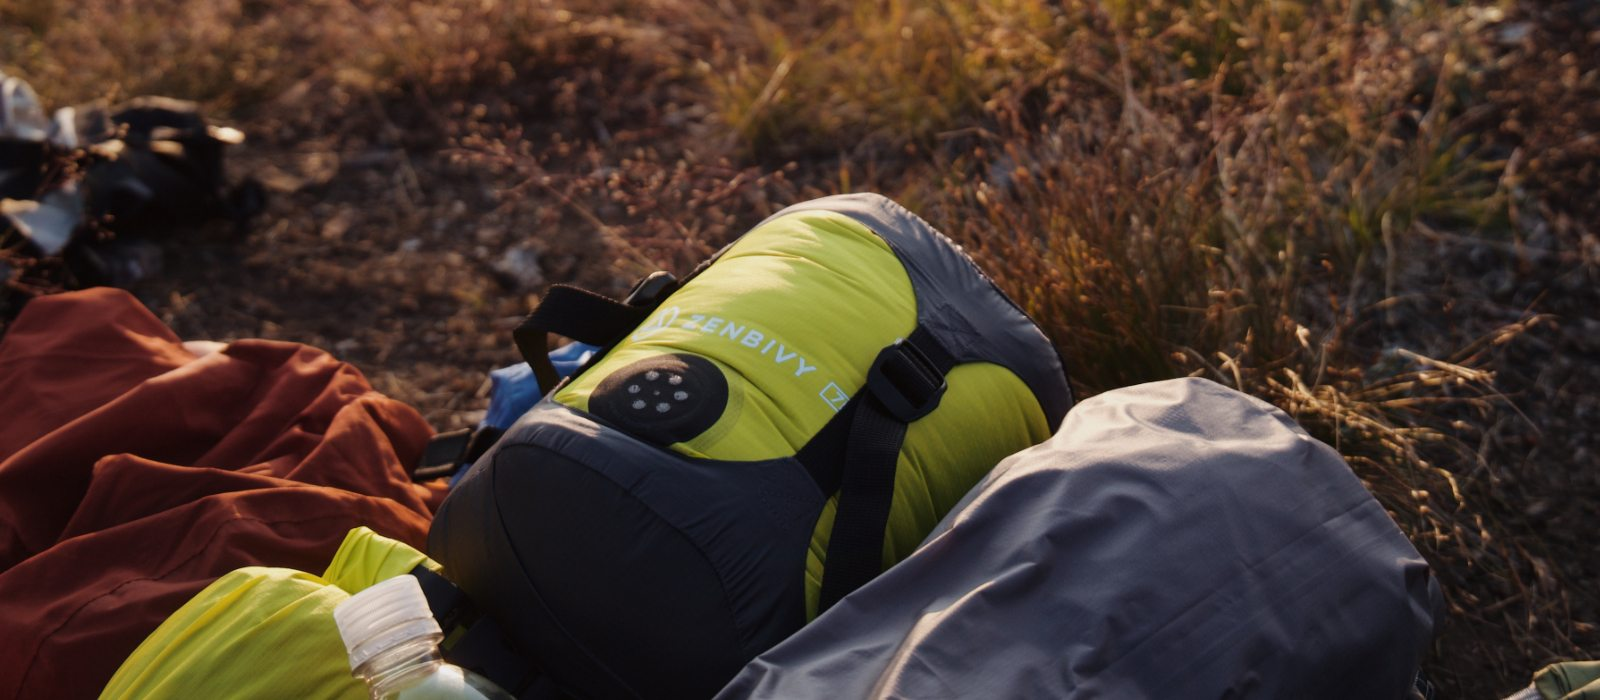 Our Dry Sacks are compression compatible, not all-in-one, which means you get to choose. Pair your Zenbivy Dry Sack with our Compression Caps to get an even smaller, more compact bundle for packing.